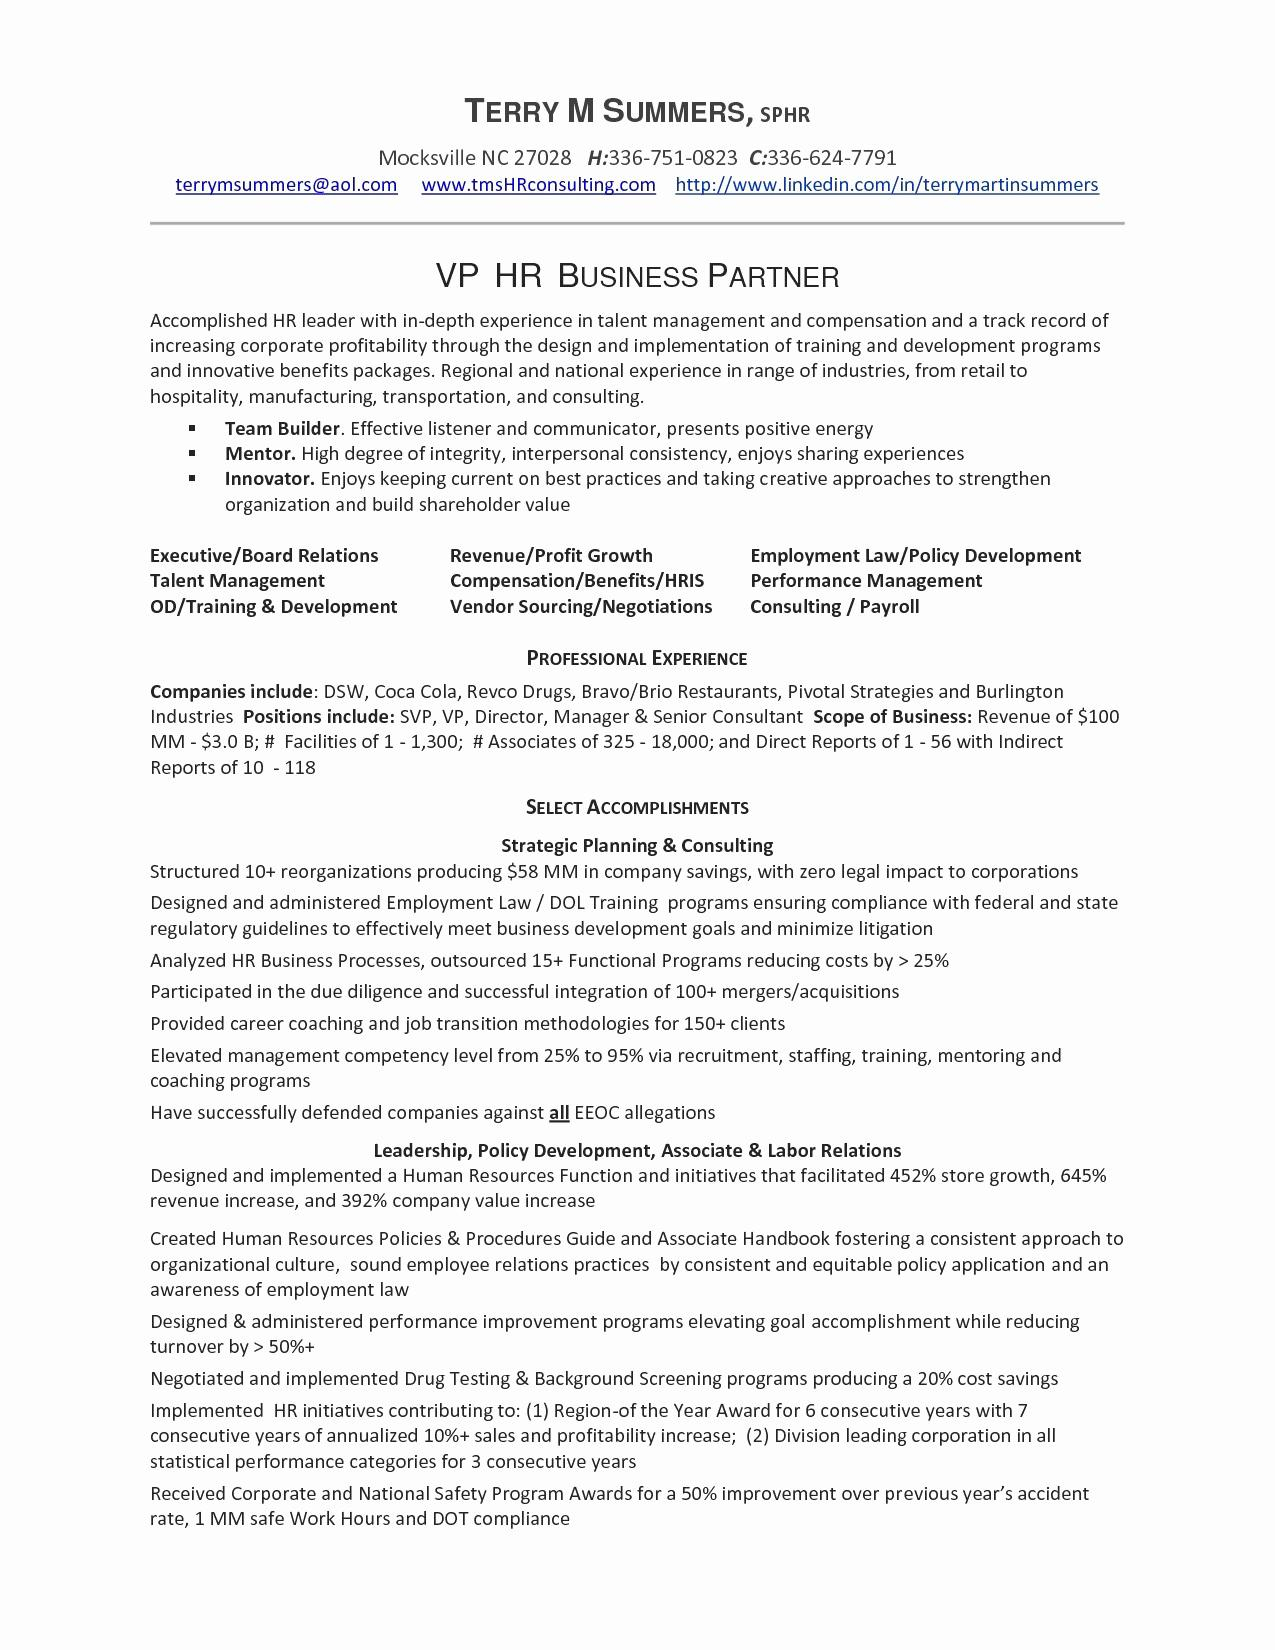 Operations Manager Resume Template - Operations Manager Resume Sample New Hr Manager Resume Beautiful